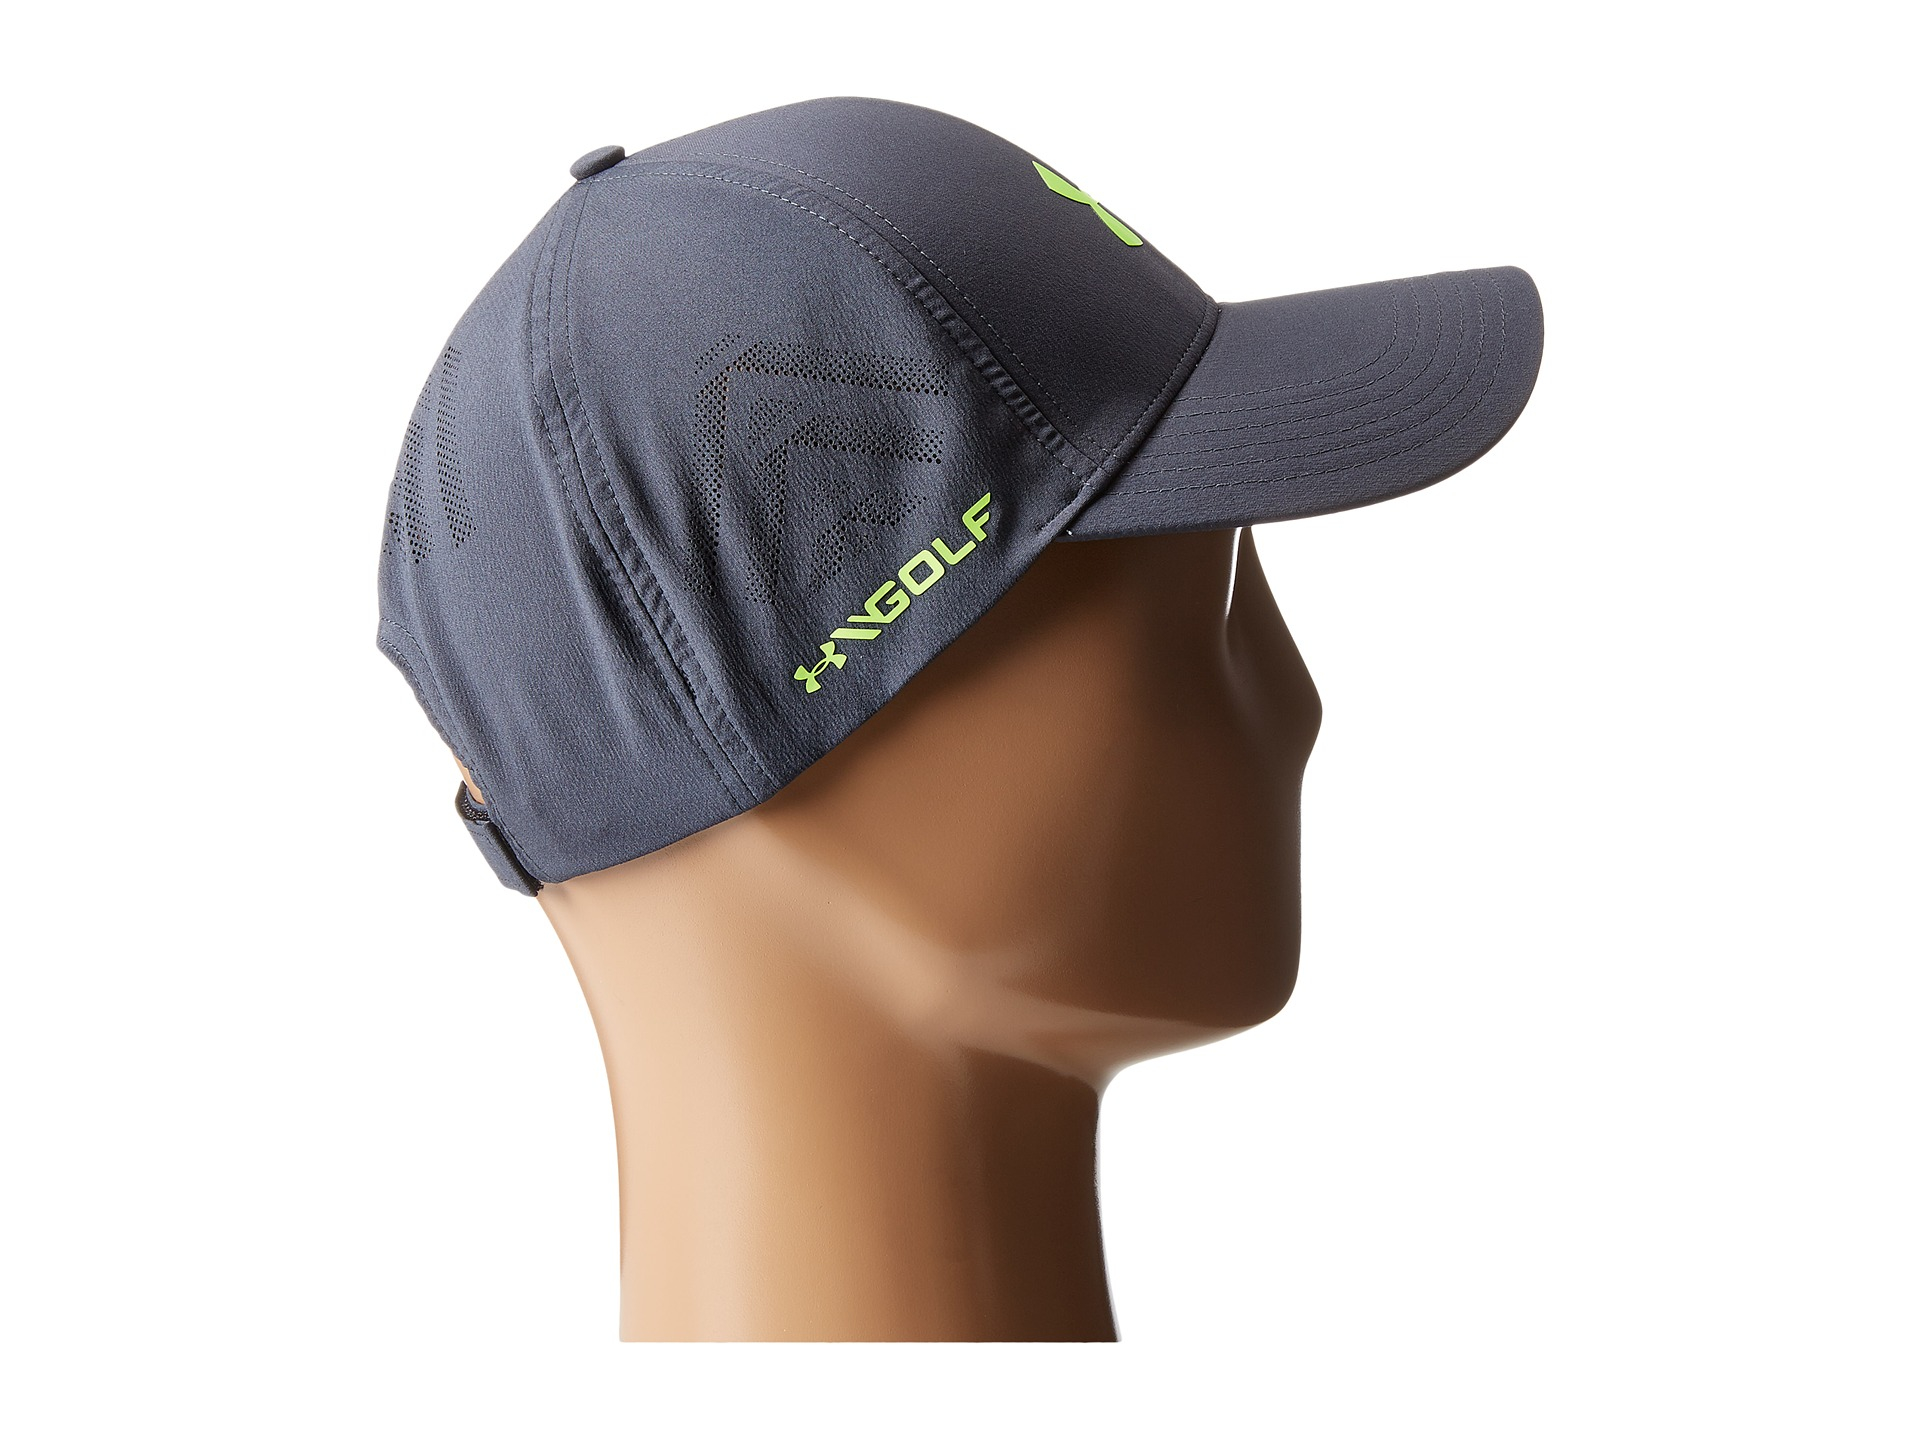 47bbd29e2ad Lyst - Under Armour Ua Driver Adjustable Golf Cap in Gray for Men